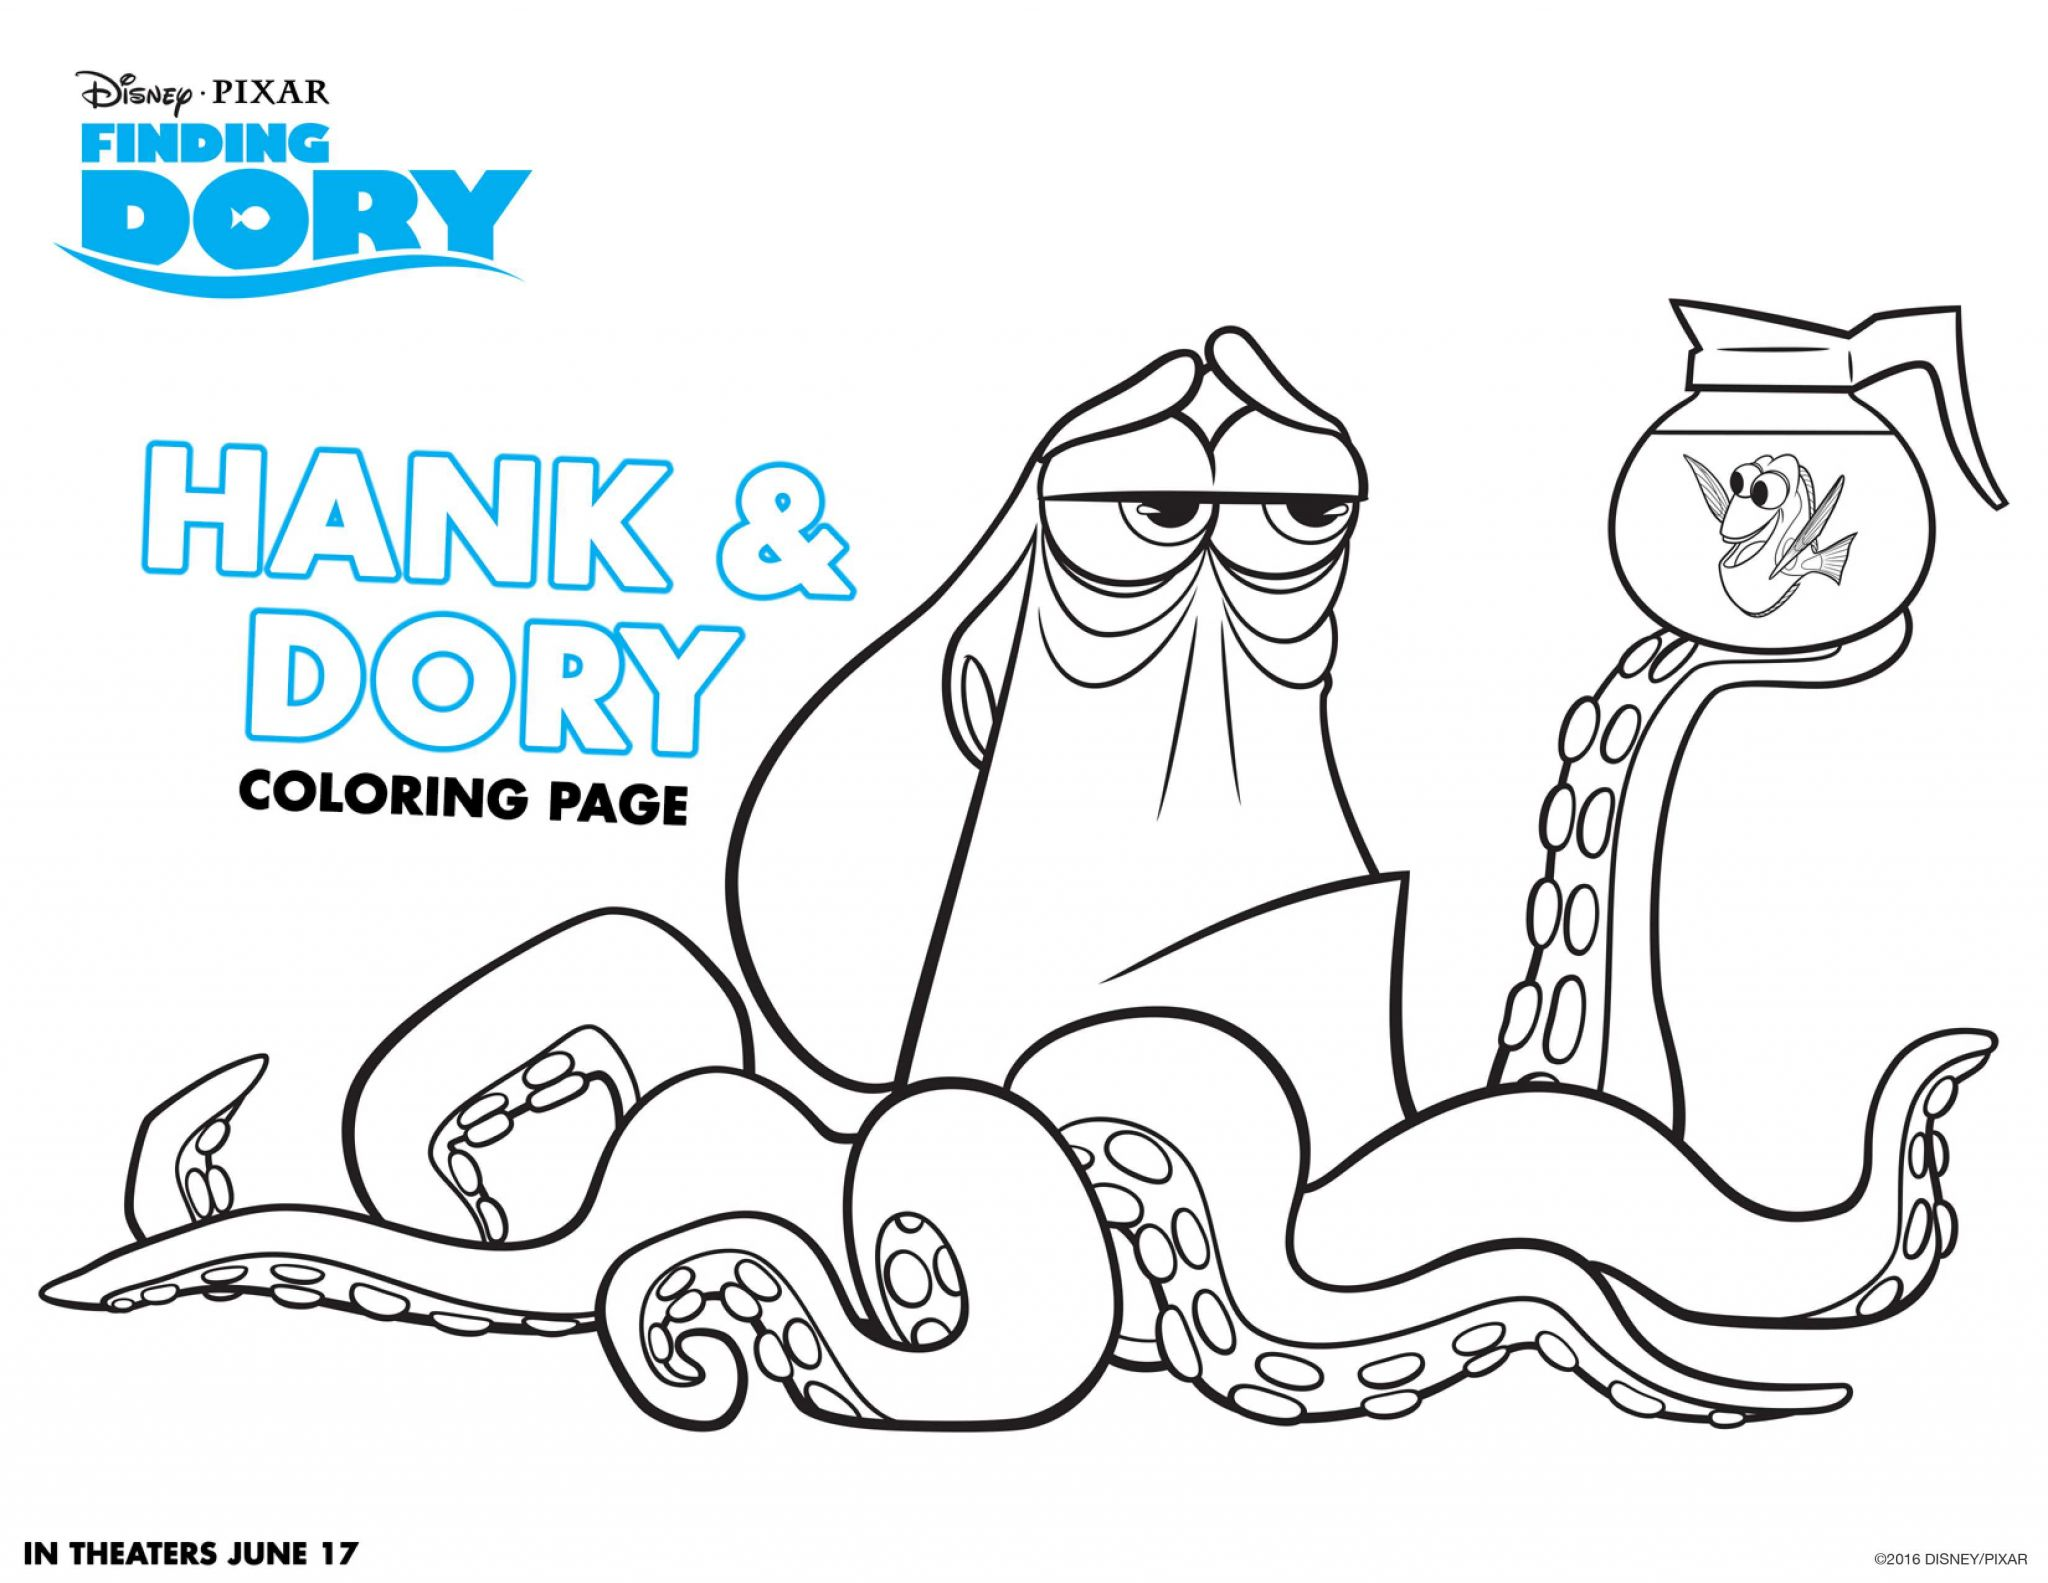 Finding Nemo Worksheet Also Finding Dory Coloring Sheets Dory Party by Debby Smith